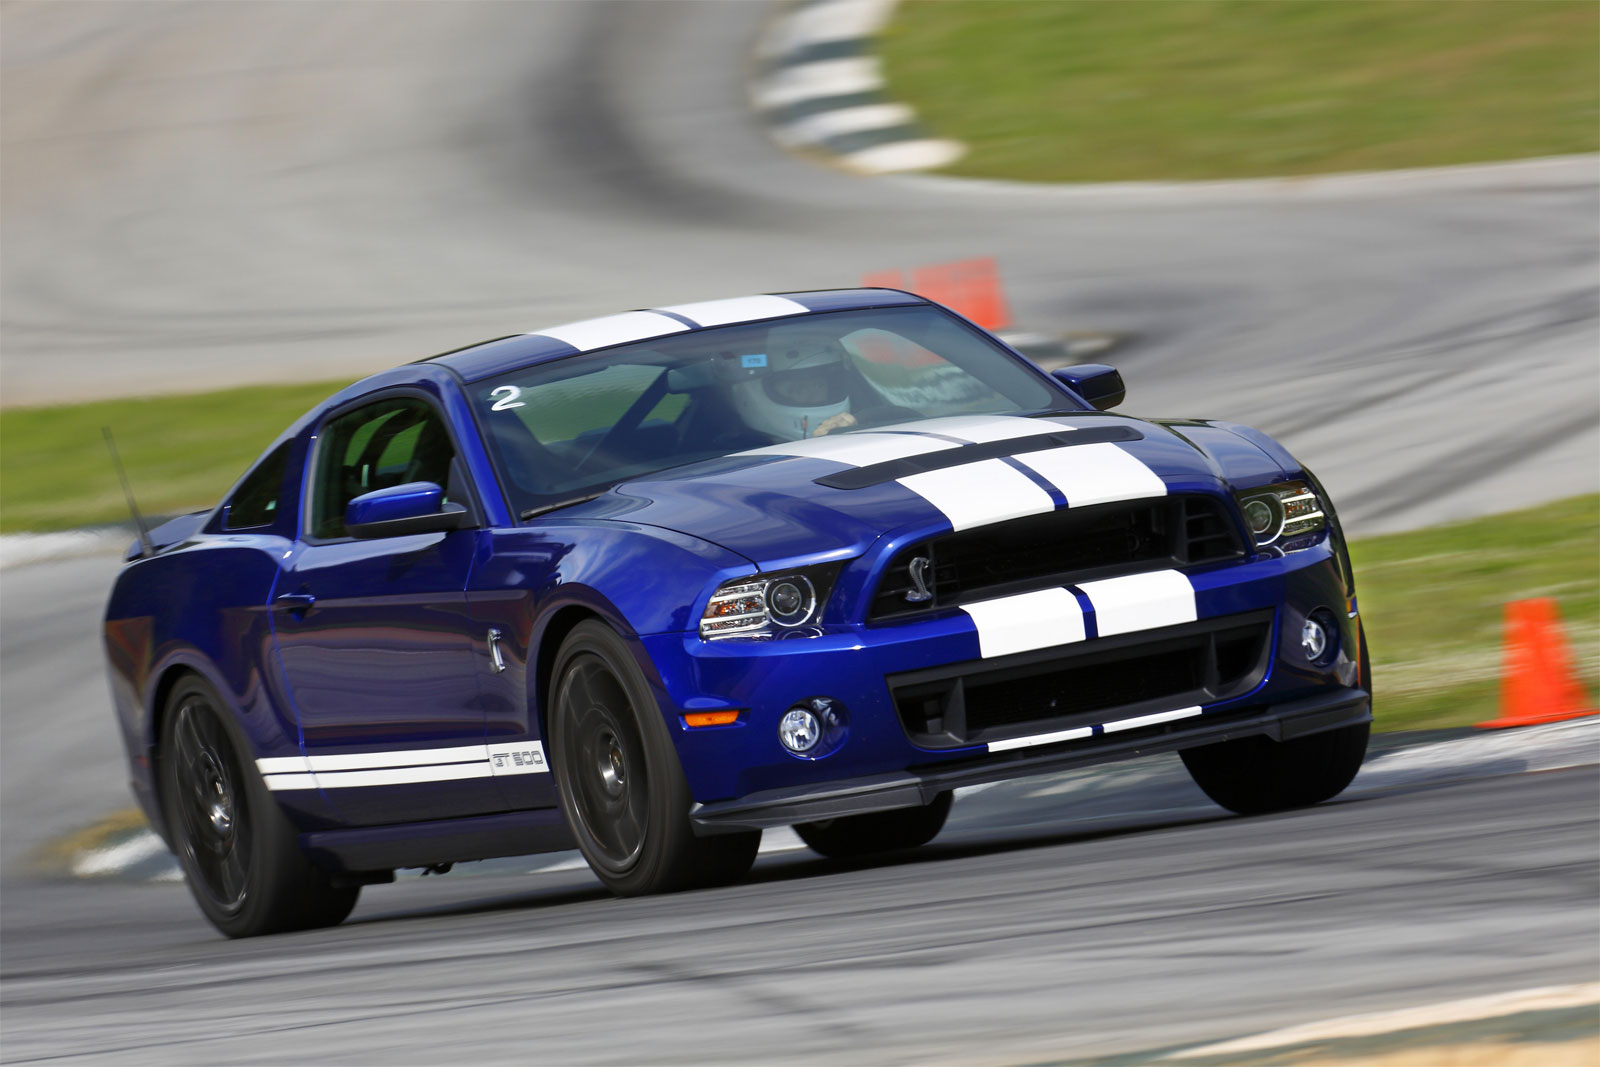 sport cars ford shelby gt500 hd wallpapers 2013. Black Bedroom Furniture Sets. Home Design Ideas